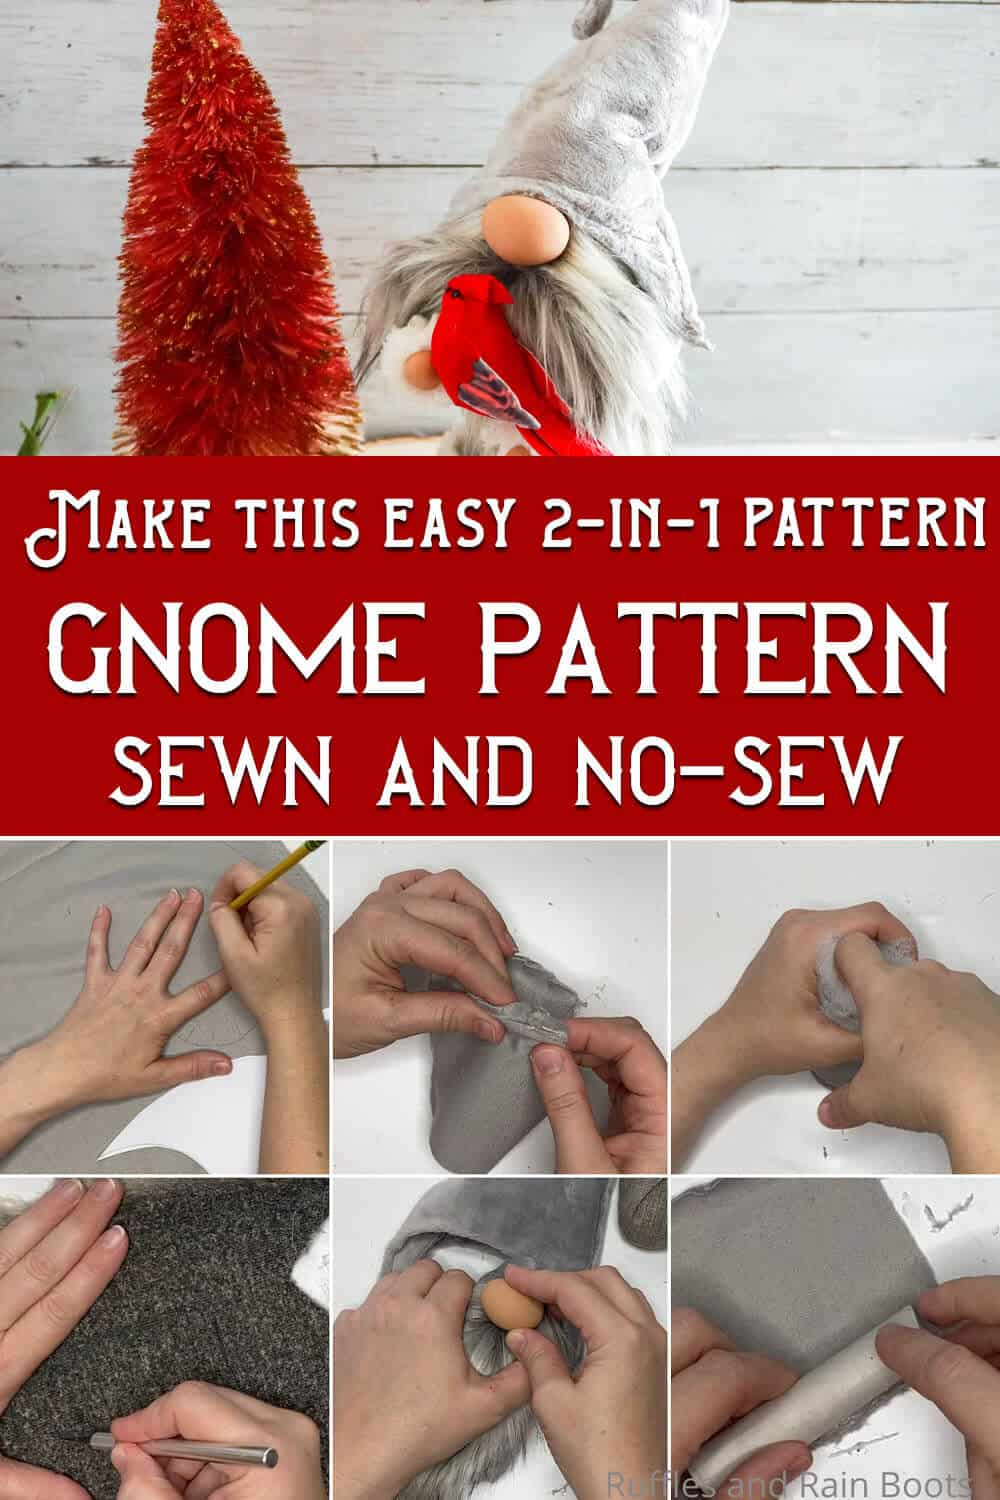 photo collage of bubble body gnome no-sew gnome pattern and sewn gnome pattern with text which reads make this easy 2-in-1 pattern gnome pattern sewn and no-sew